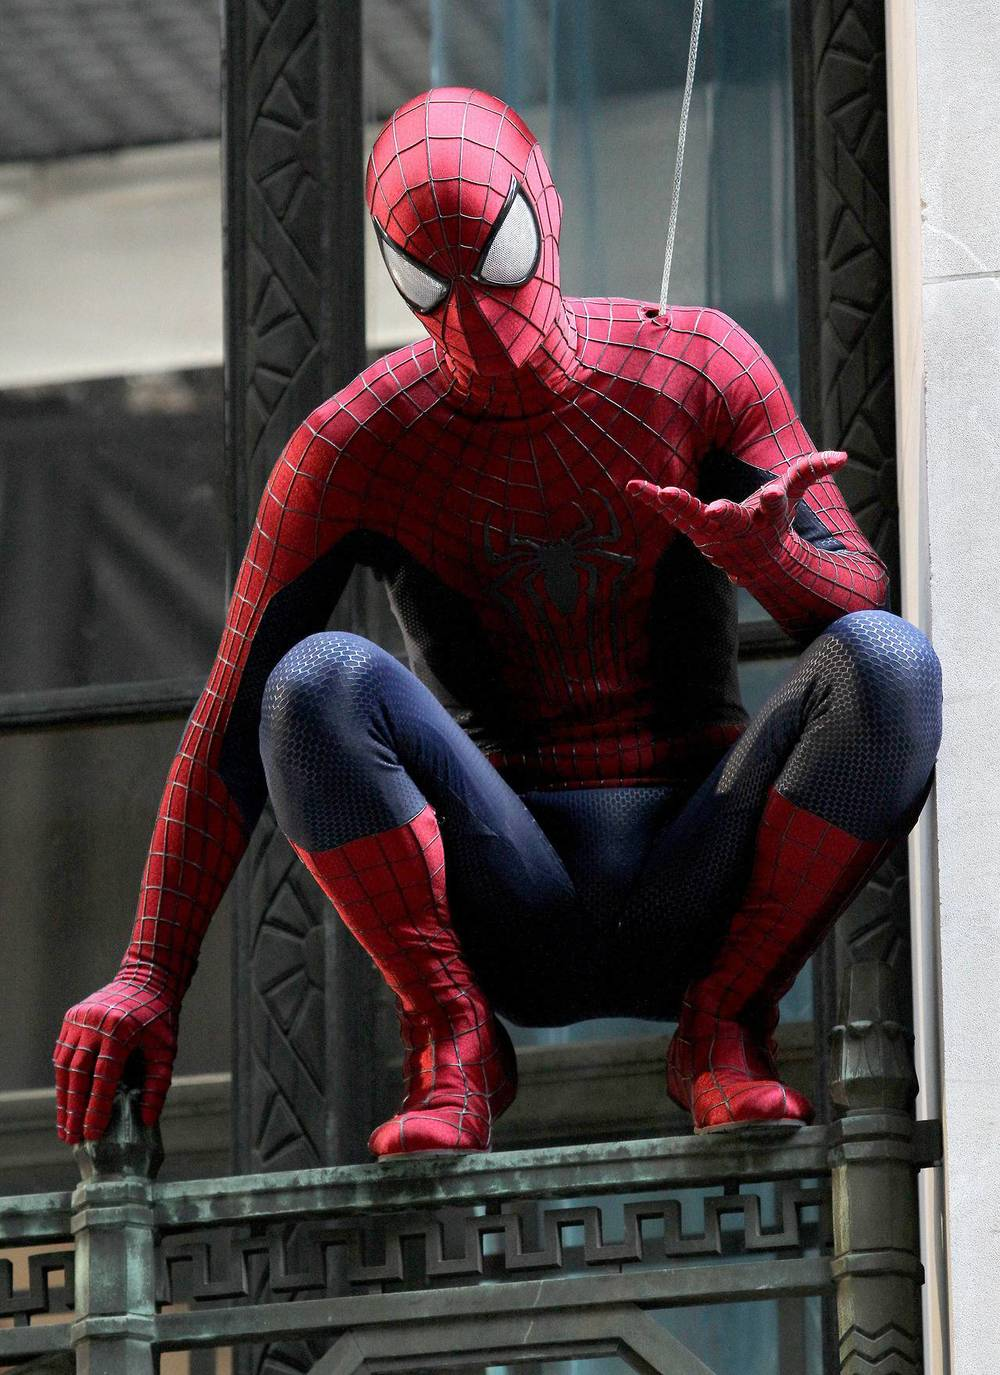 Spider-Man-2-set-photo.jpg